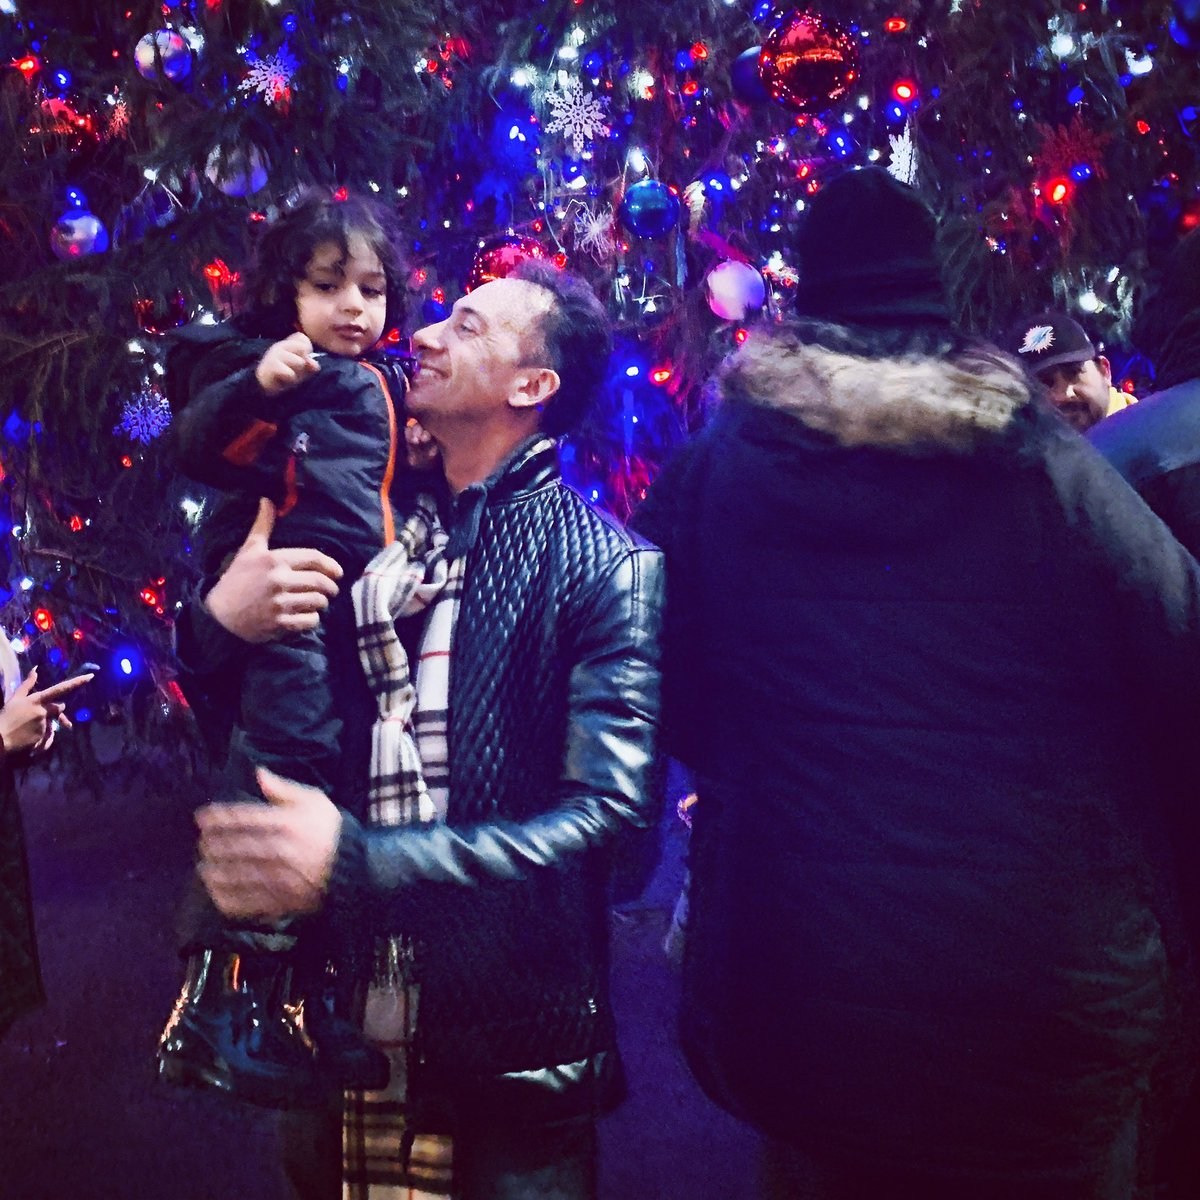 Got to spend some of the afternoon yesterday with my favorite 3 year old in Bryant Park! Blessed@bryantparknyc  #bryantpark #happyheart #sograteful #carloskeyes #livingmybestlife #nyc  #wintervillage #winteriscoming#cityliving#holiday#holidayshop#holidaymarket #blessedpic.twitter.com/xvA3RTfGSW – at Bank of America Winter Village at Bryant Park